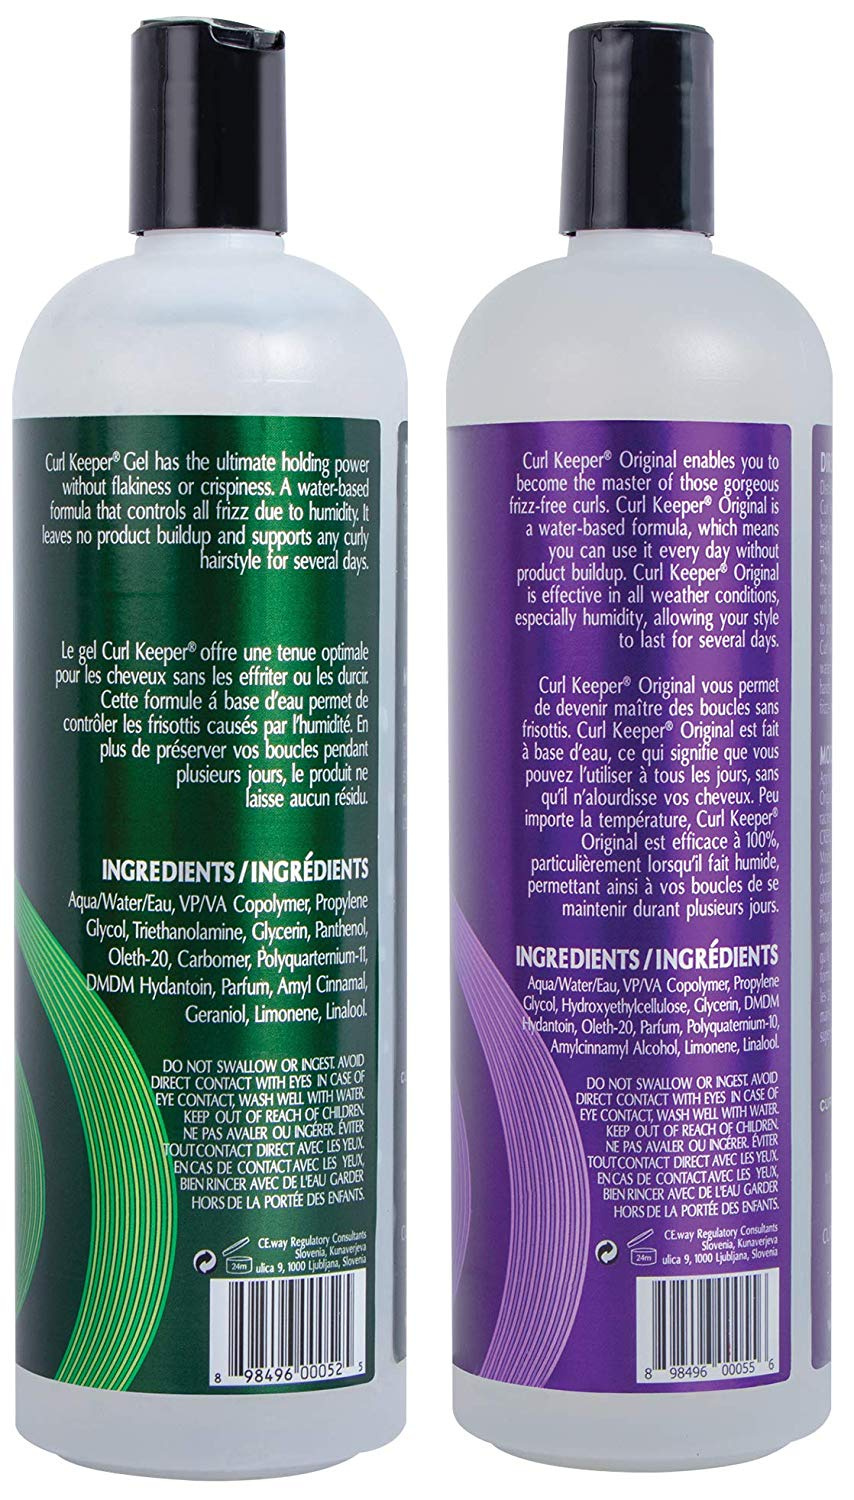 Curly Hair Solutions Curl Keeper Original Curl Keeper Gel 980ml 1000 Millilitre By Curly Hair Solutions Shop Online For Beauty In Australia